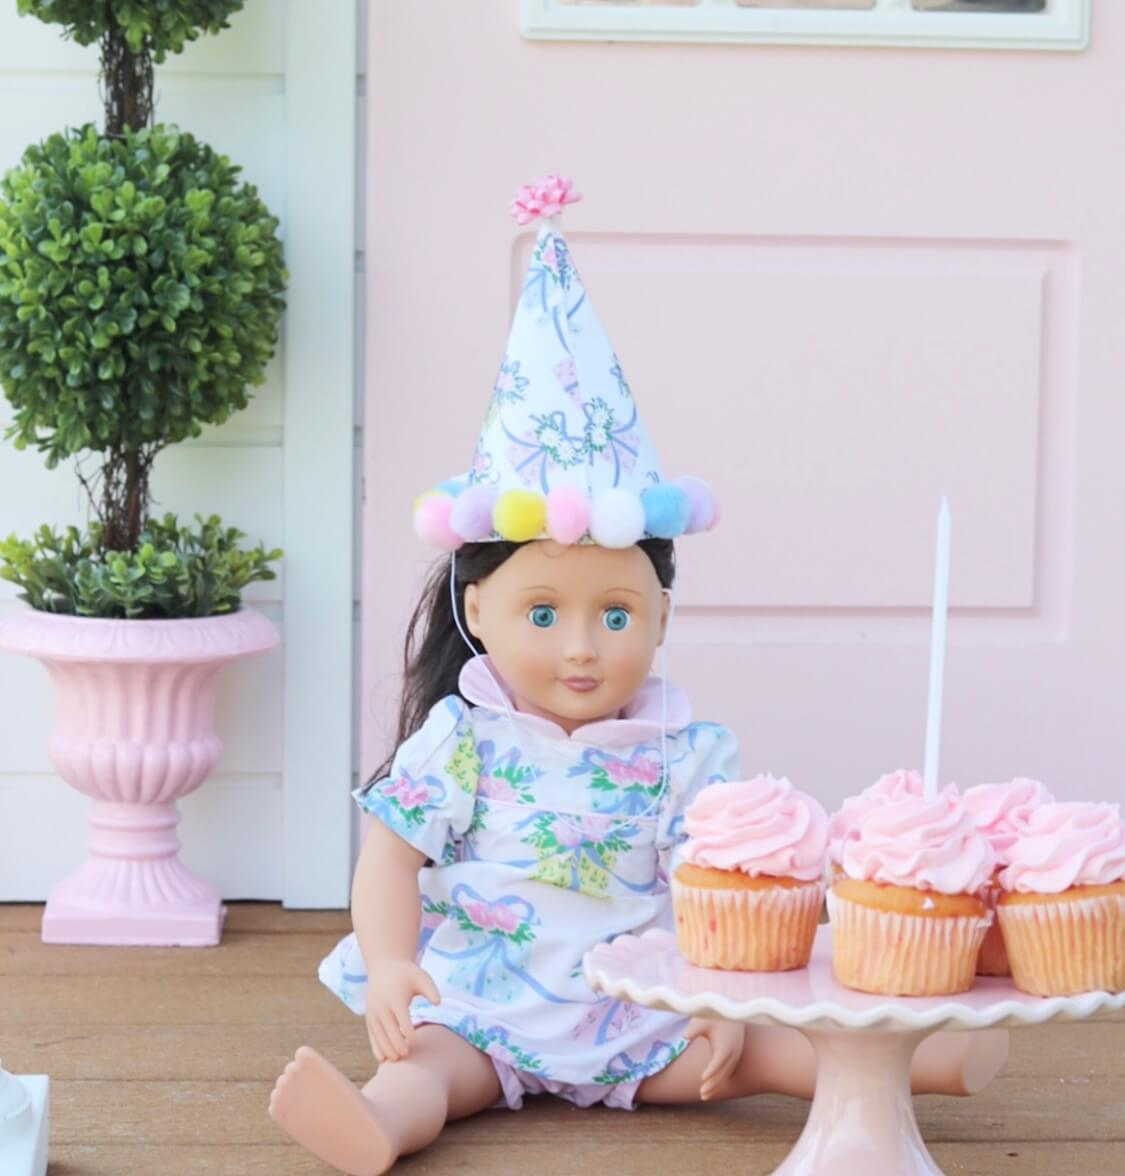 Beaufort Bonnet doll with cupcakes